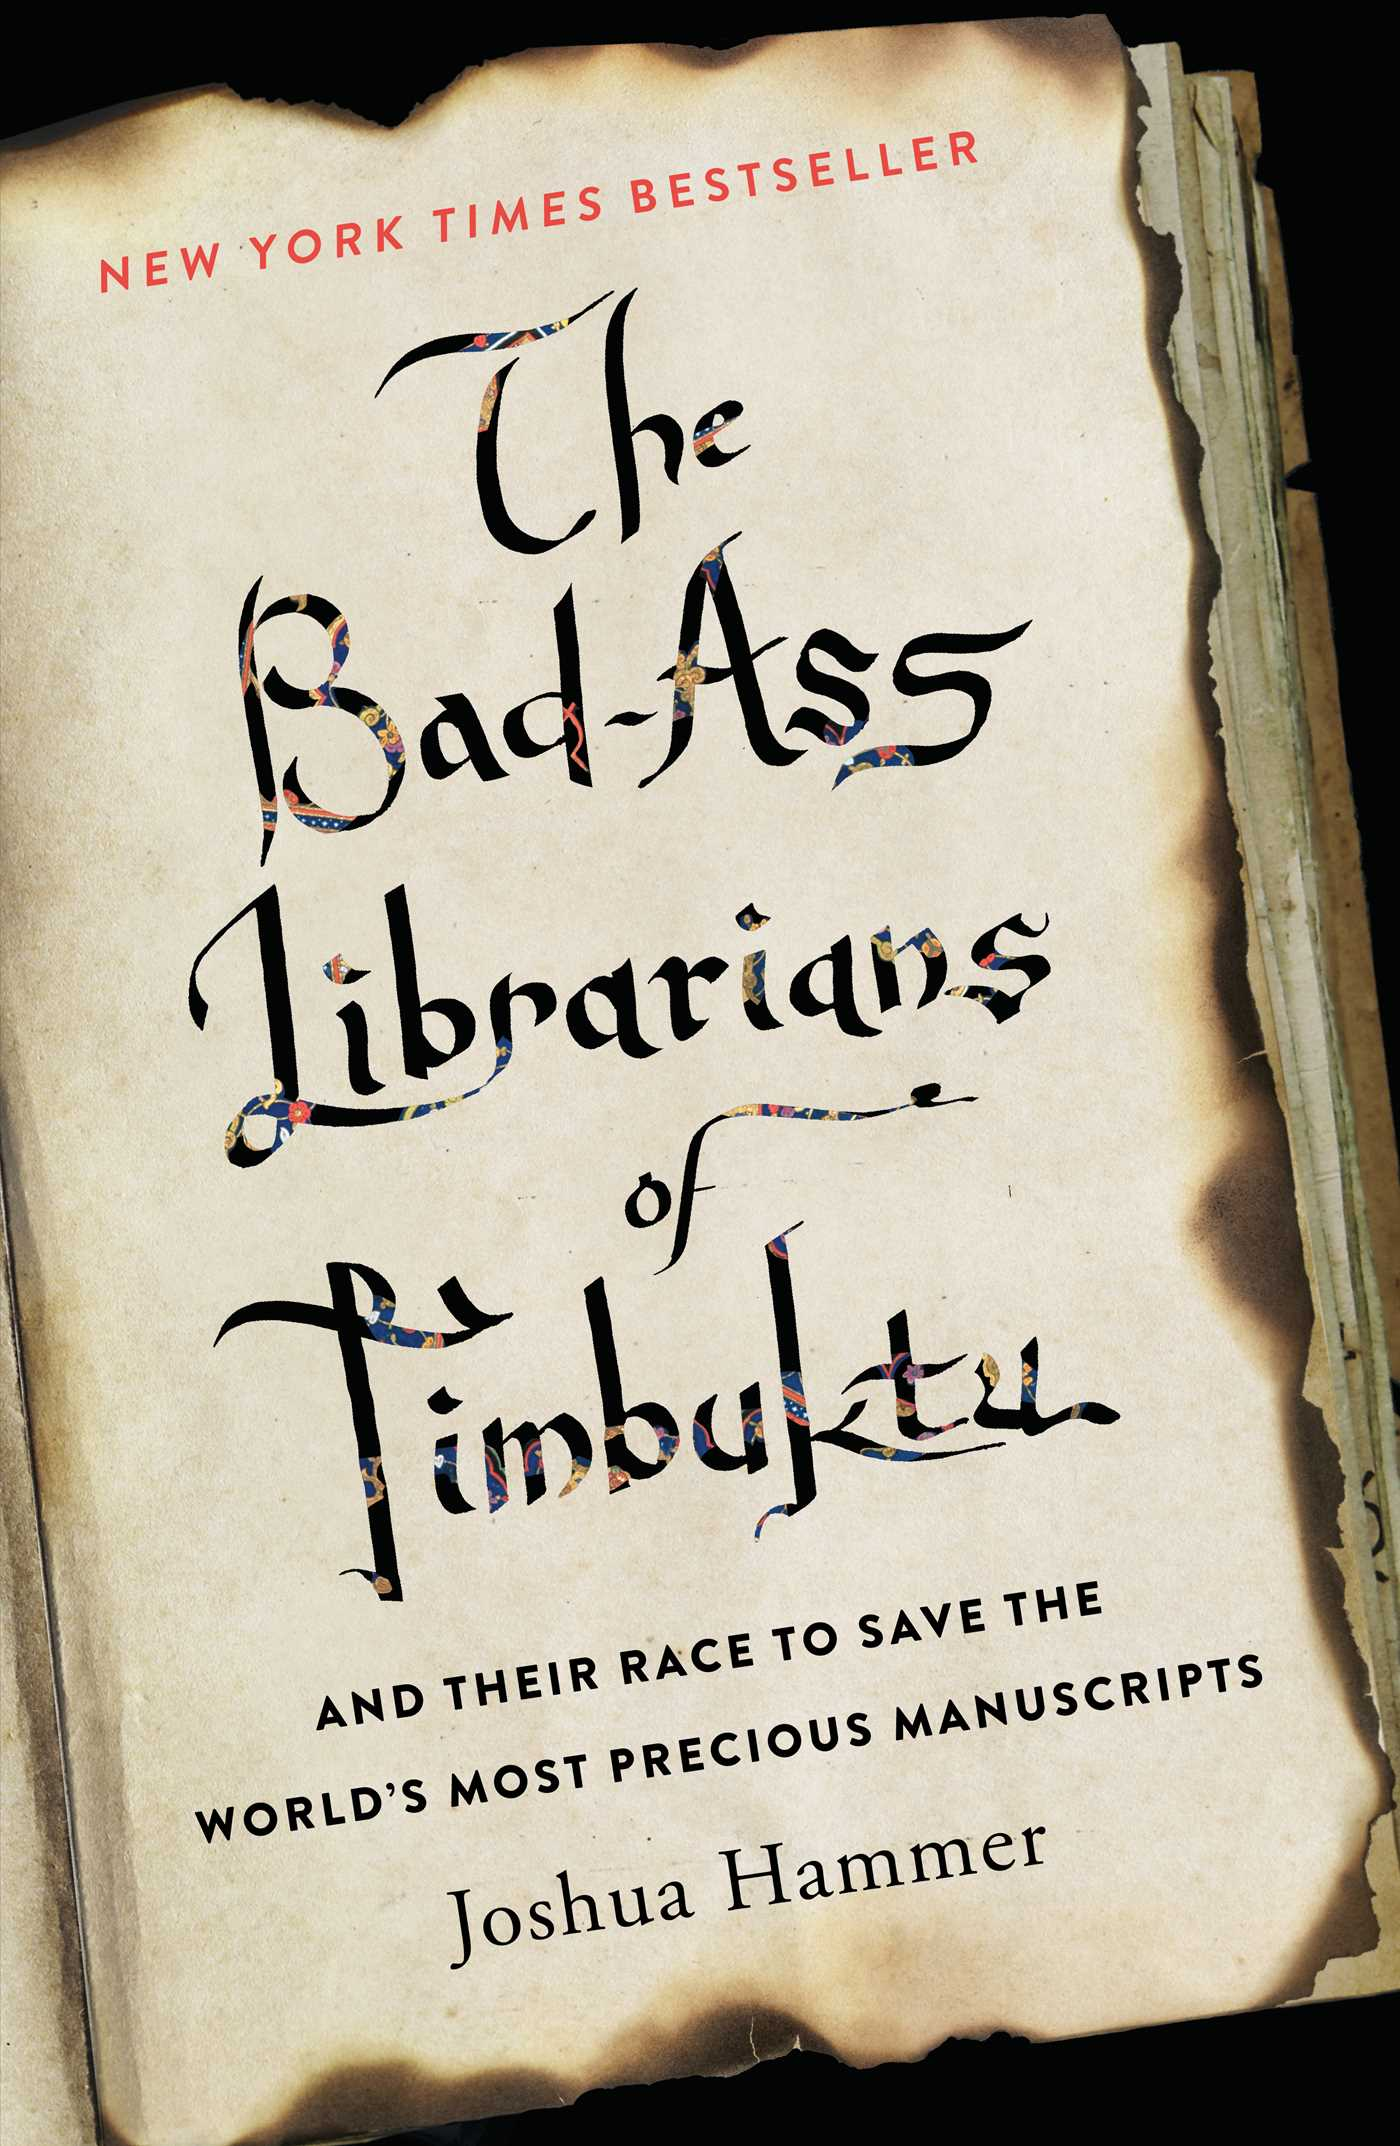 the bad ass librarians of timbuktu book by joshua hammer  the bad ass librarians of timbuktu 9781476777405 hr